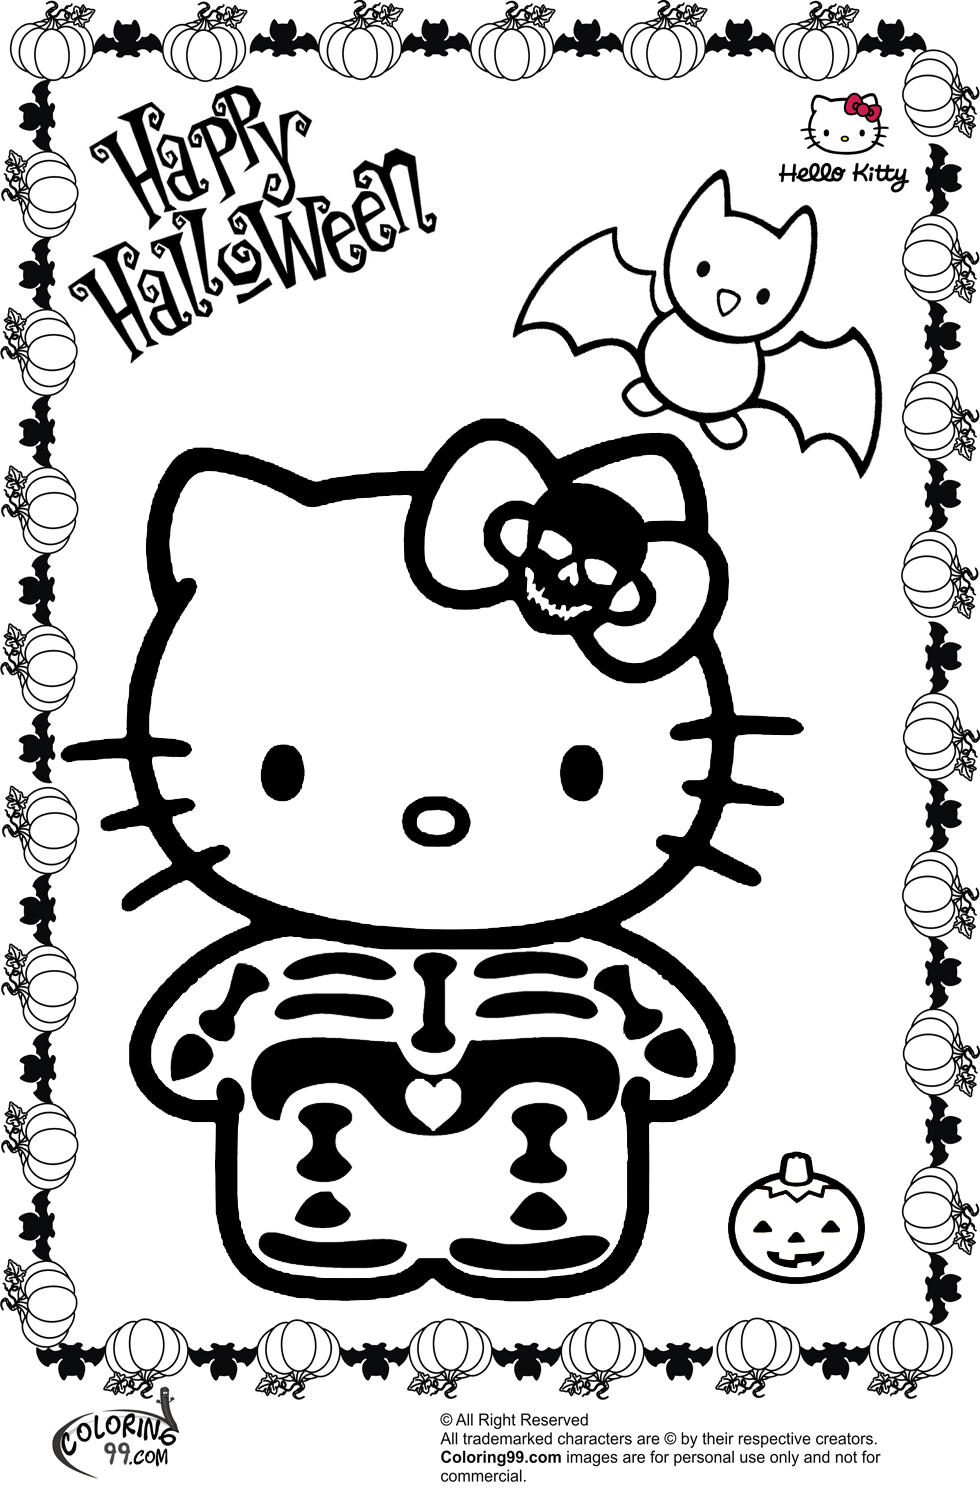 a coloring pages of hello kitty | Hello Kitty Halloween Coloring Pages | Minister Coloring